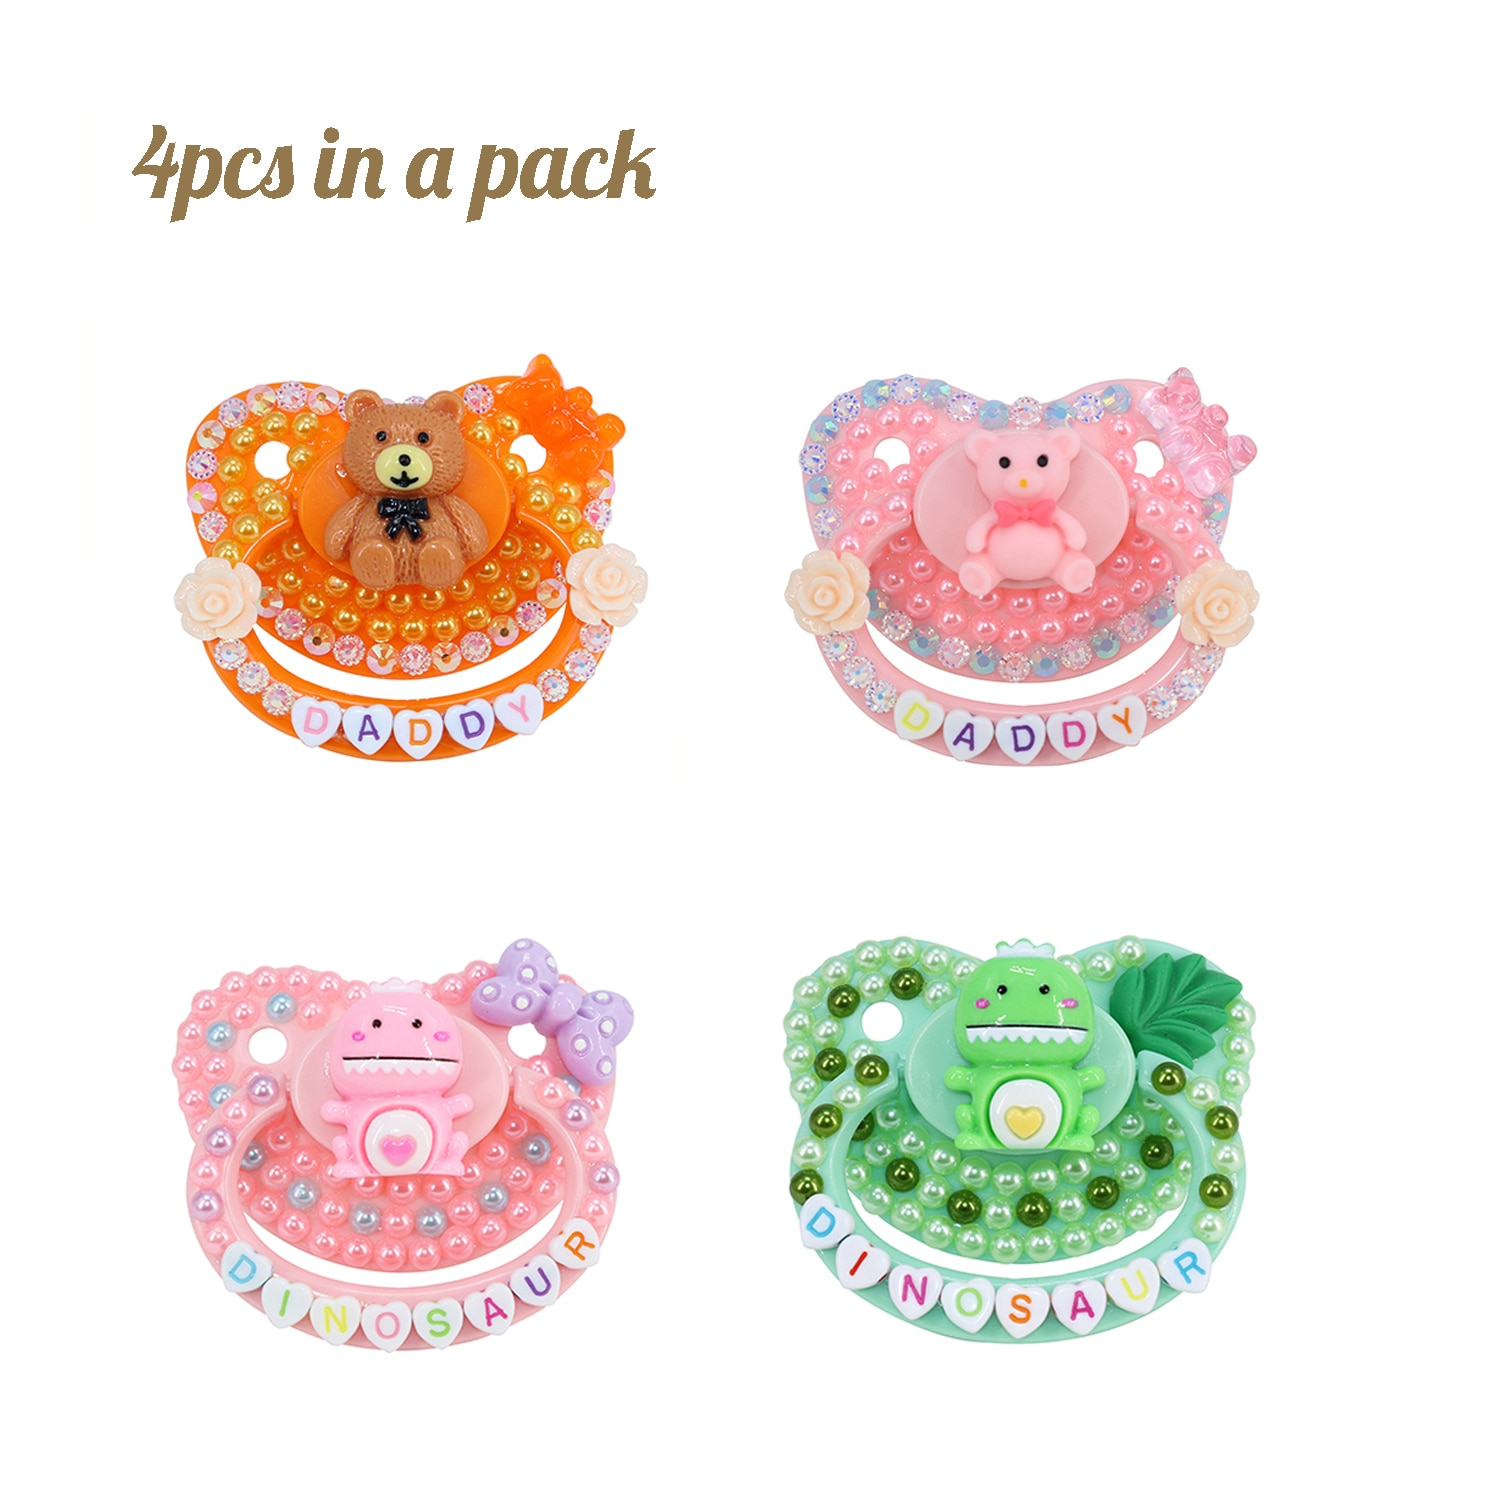 4PCS-New 2021 DDLG Adult Baby Size Pacifier 100% Handmake Silicone BPA Free abdl Adult Size Pacifier Diaper Lover Dummy Dom